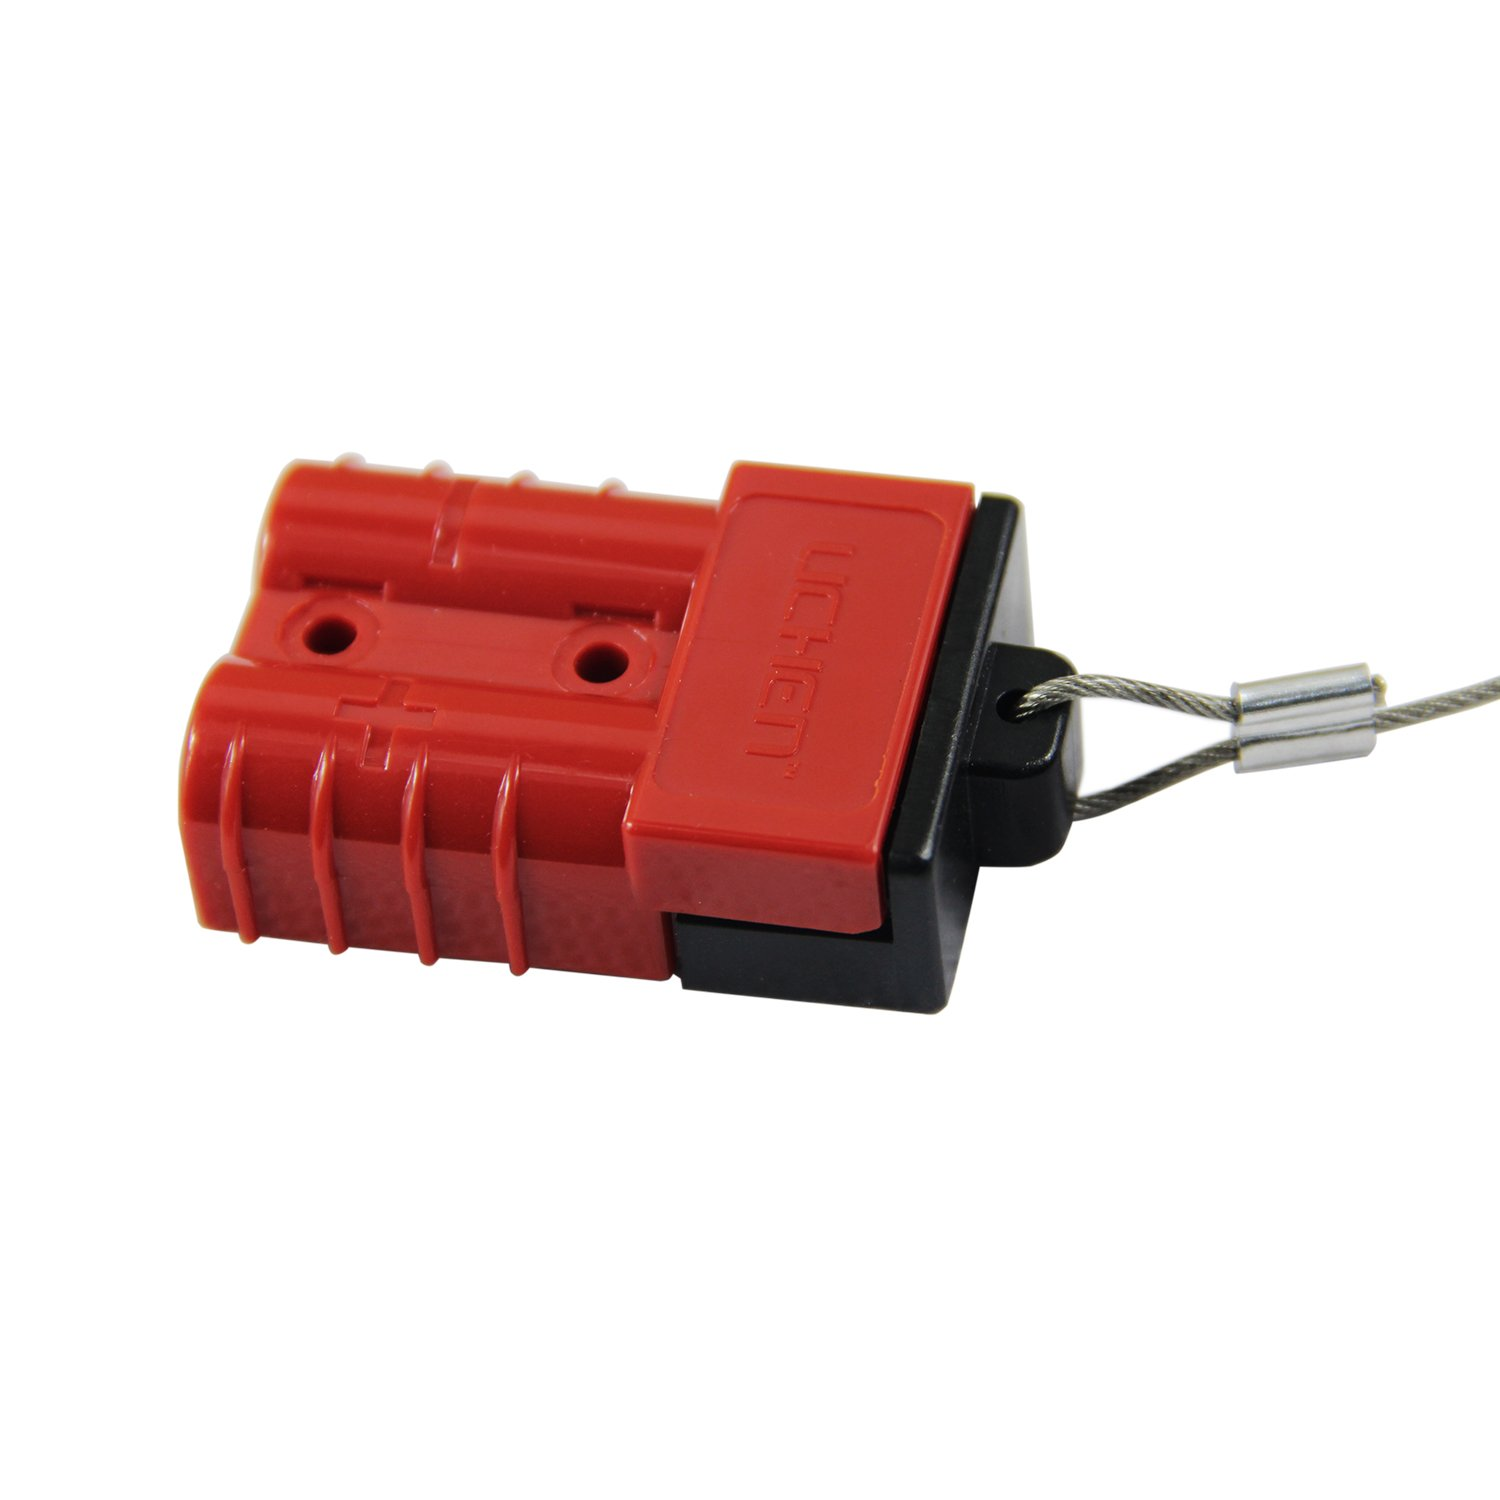 Hyclat 6 10 Gauge Battery Quick Connect Disconnect Wire Winch Harness Plug Connector Recovery Trailer Automotive